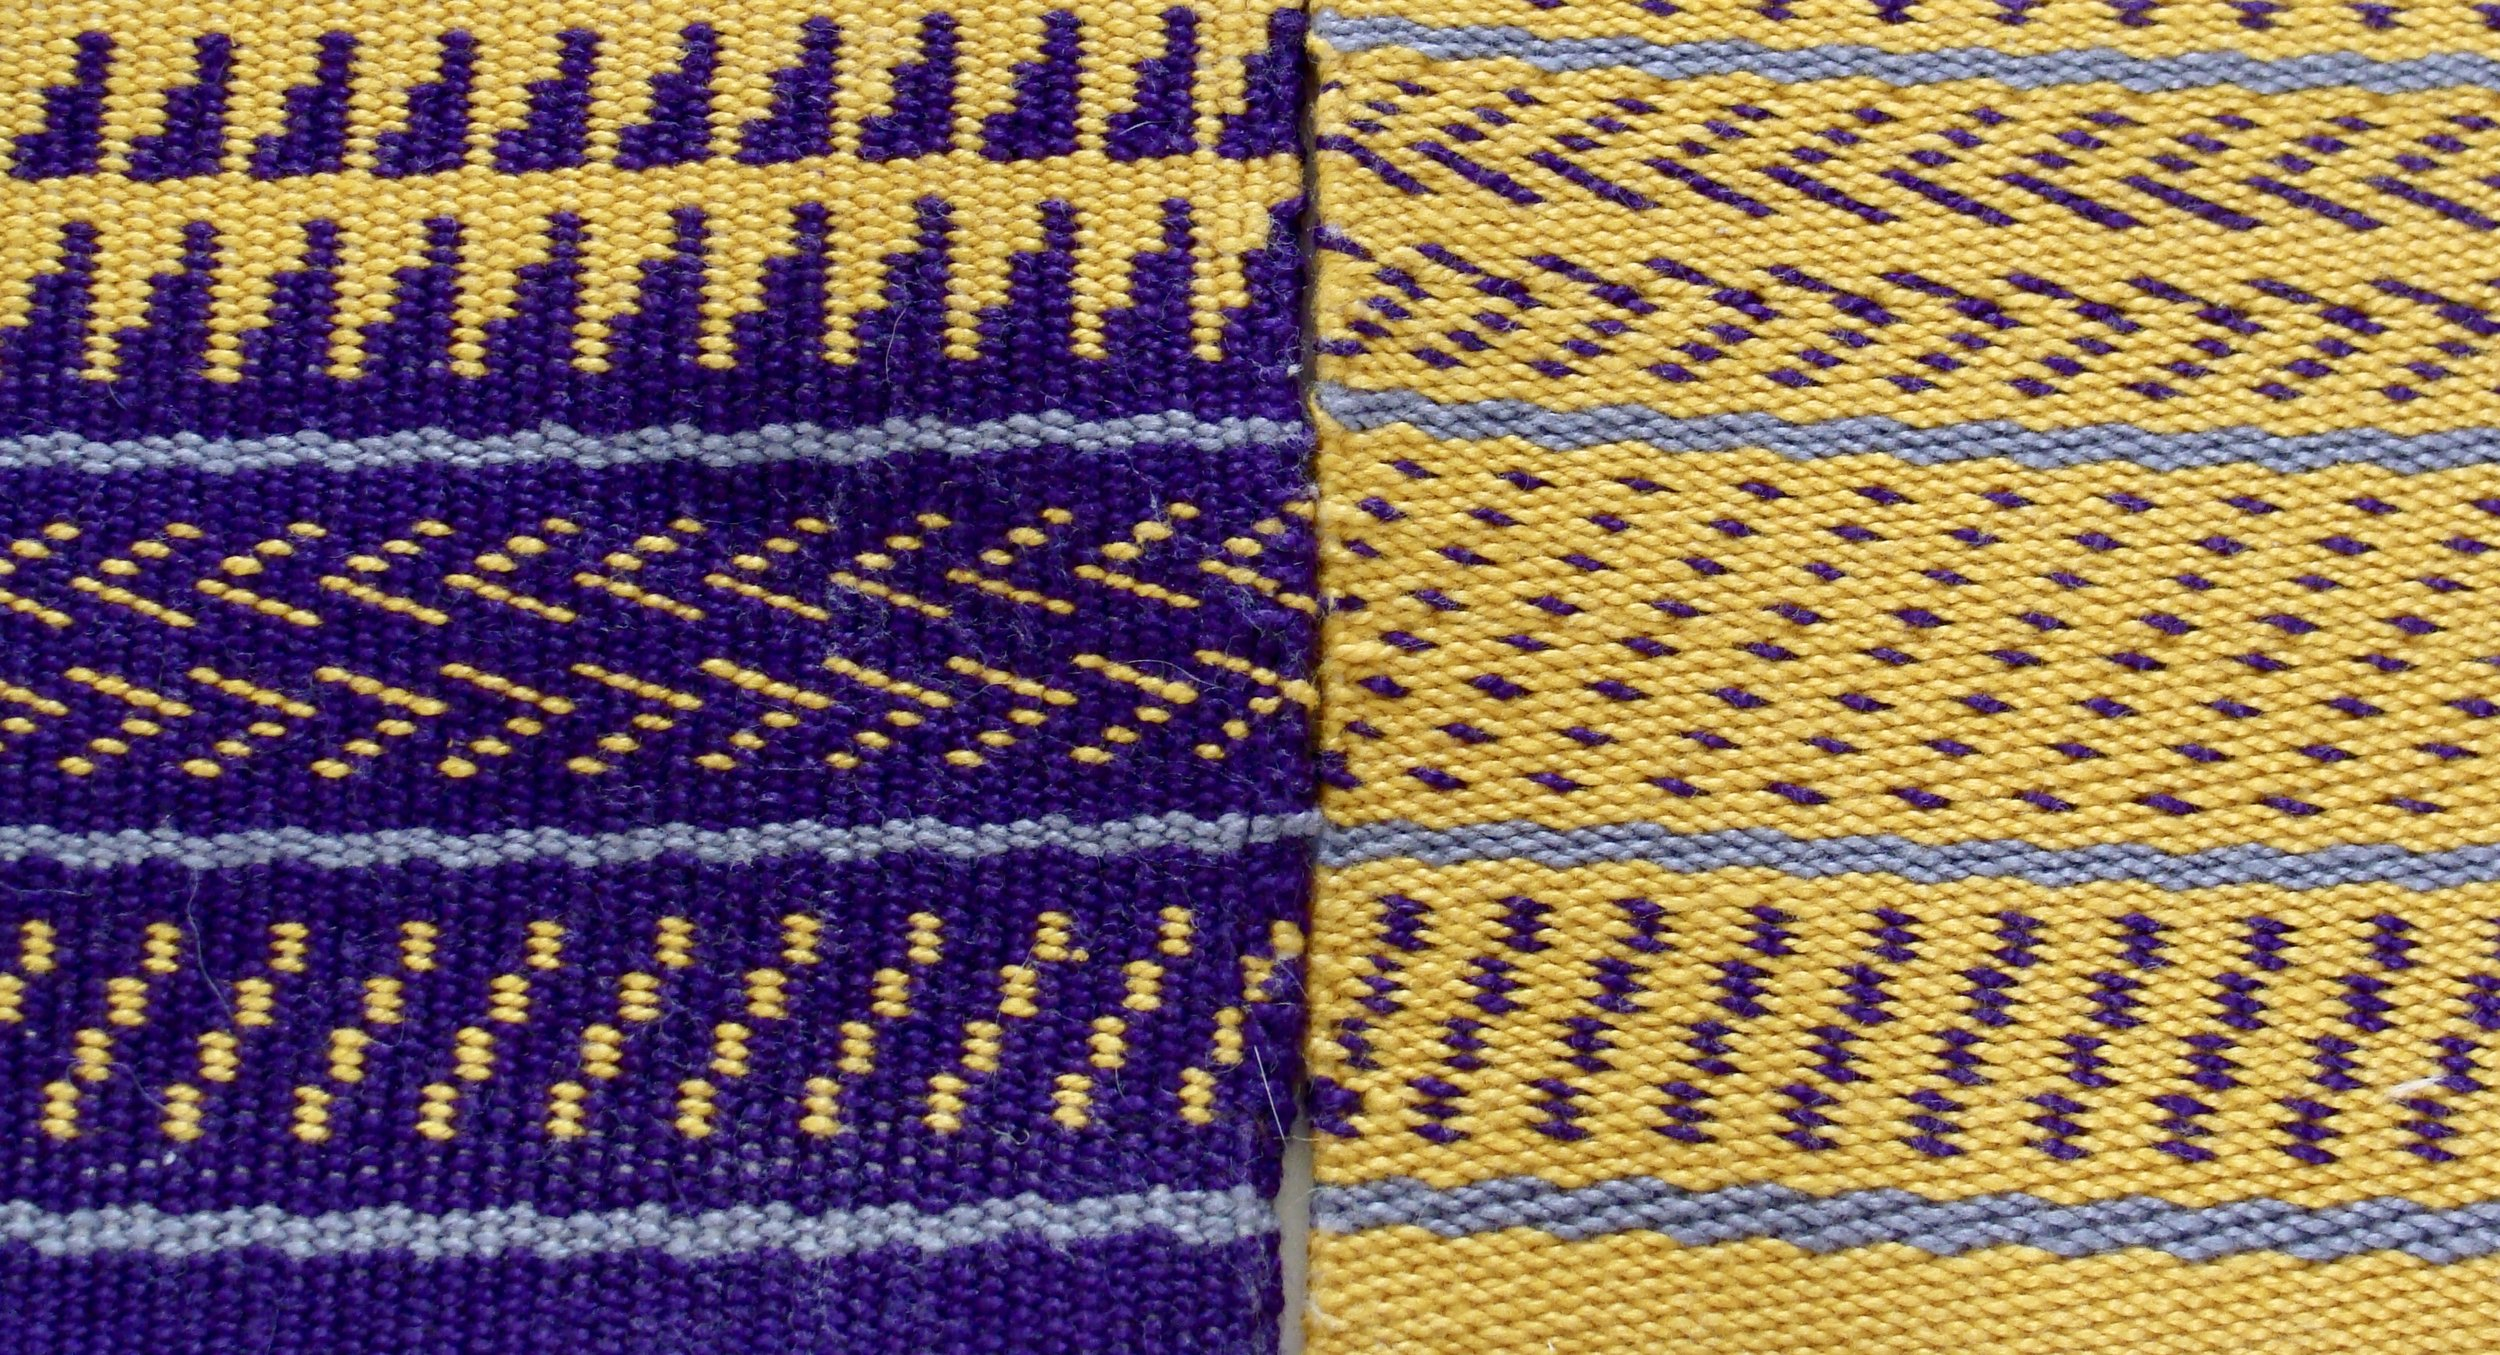 Sampler II Twill 3/1 (left). Sampler III Twill 2/2 (right)